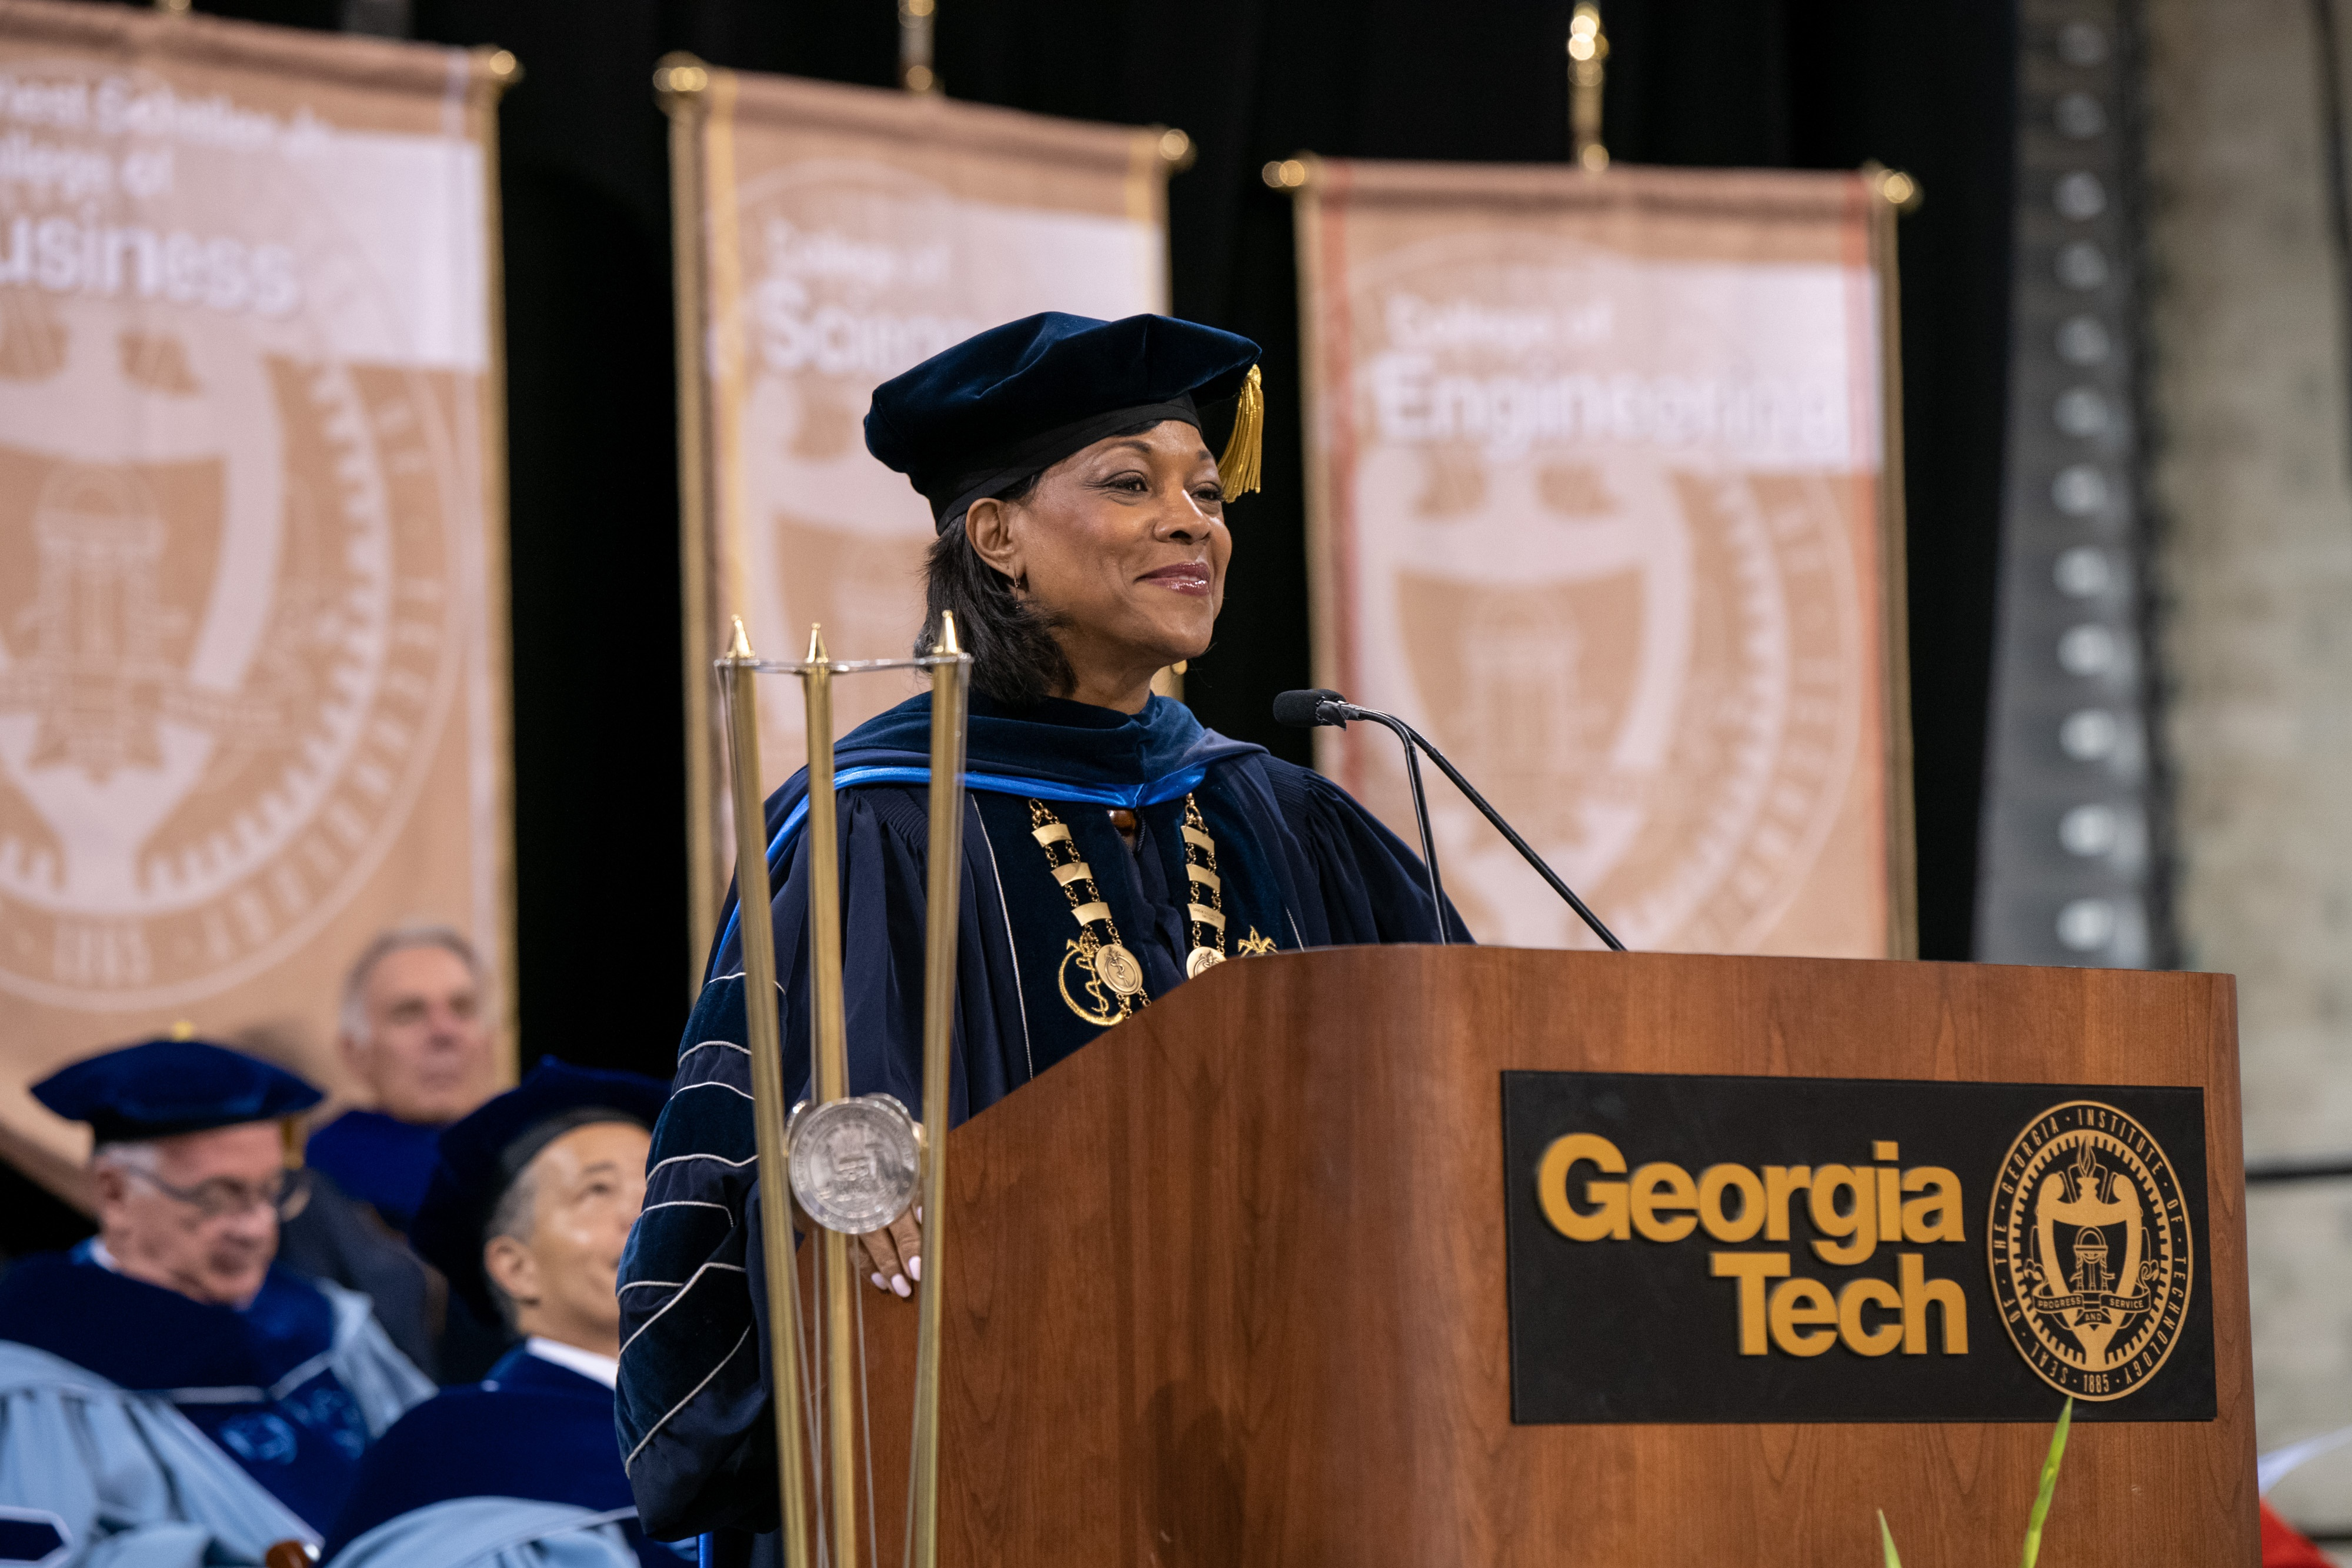 Dr. Montgomery Rice Encourages Graduates to 'Master the Middle' and to Not Fear Failure